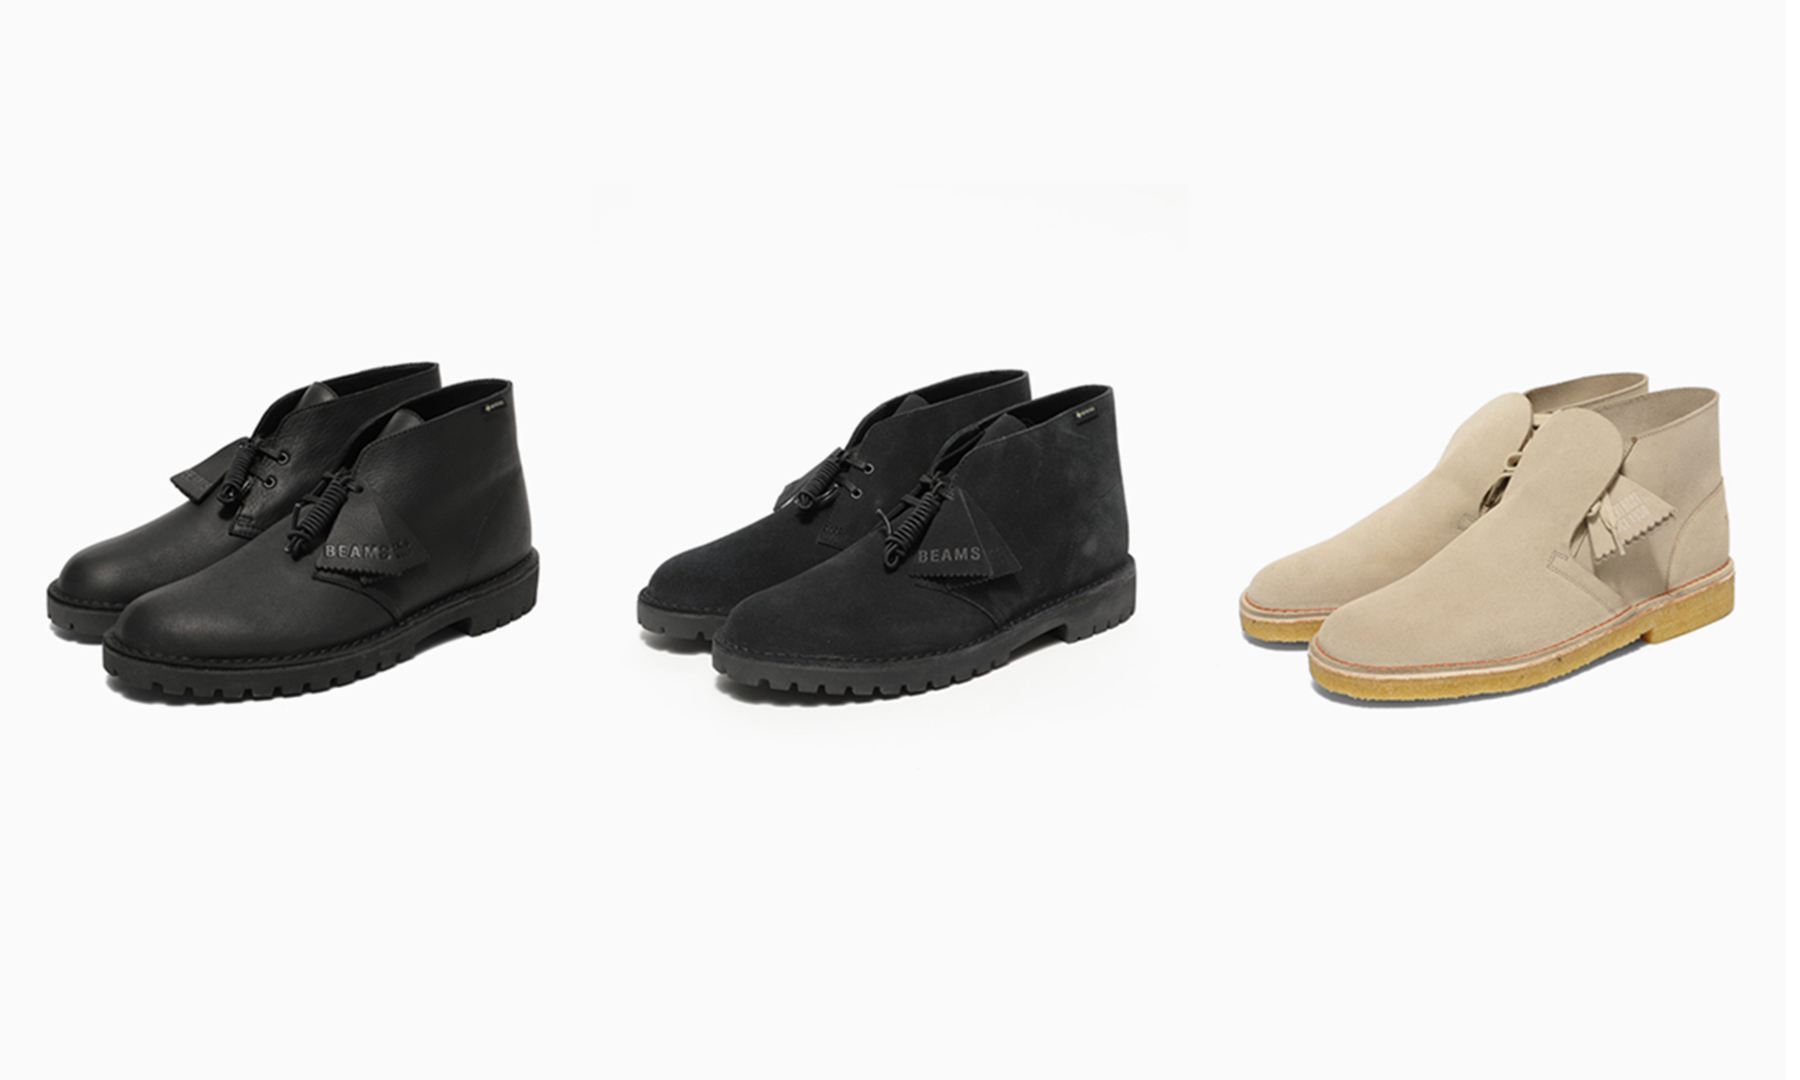 BEAMS x Clarks Originals 2020 秋冬季度全新合作亮相